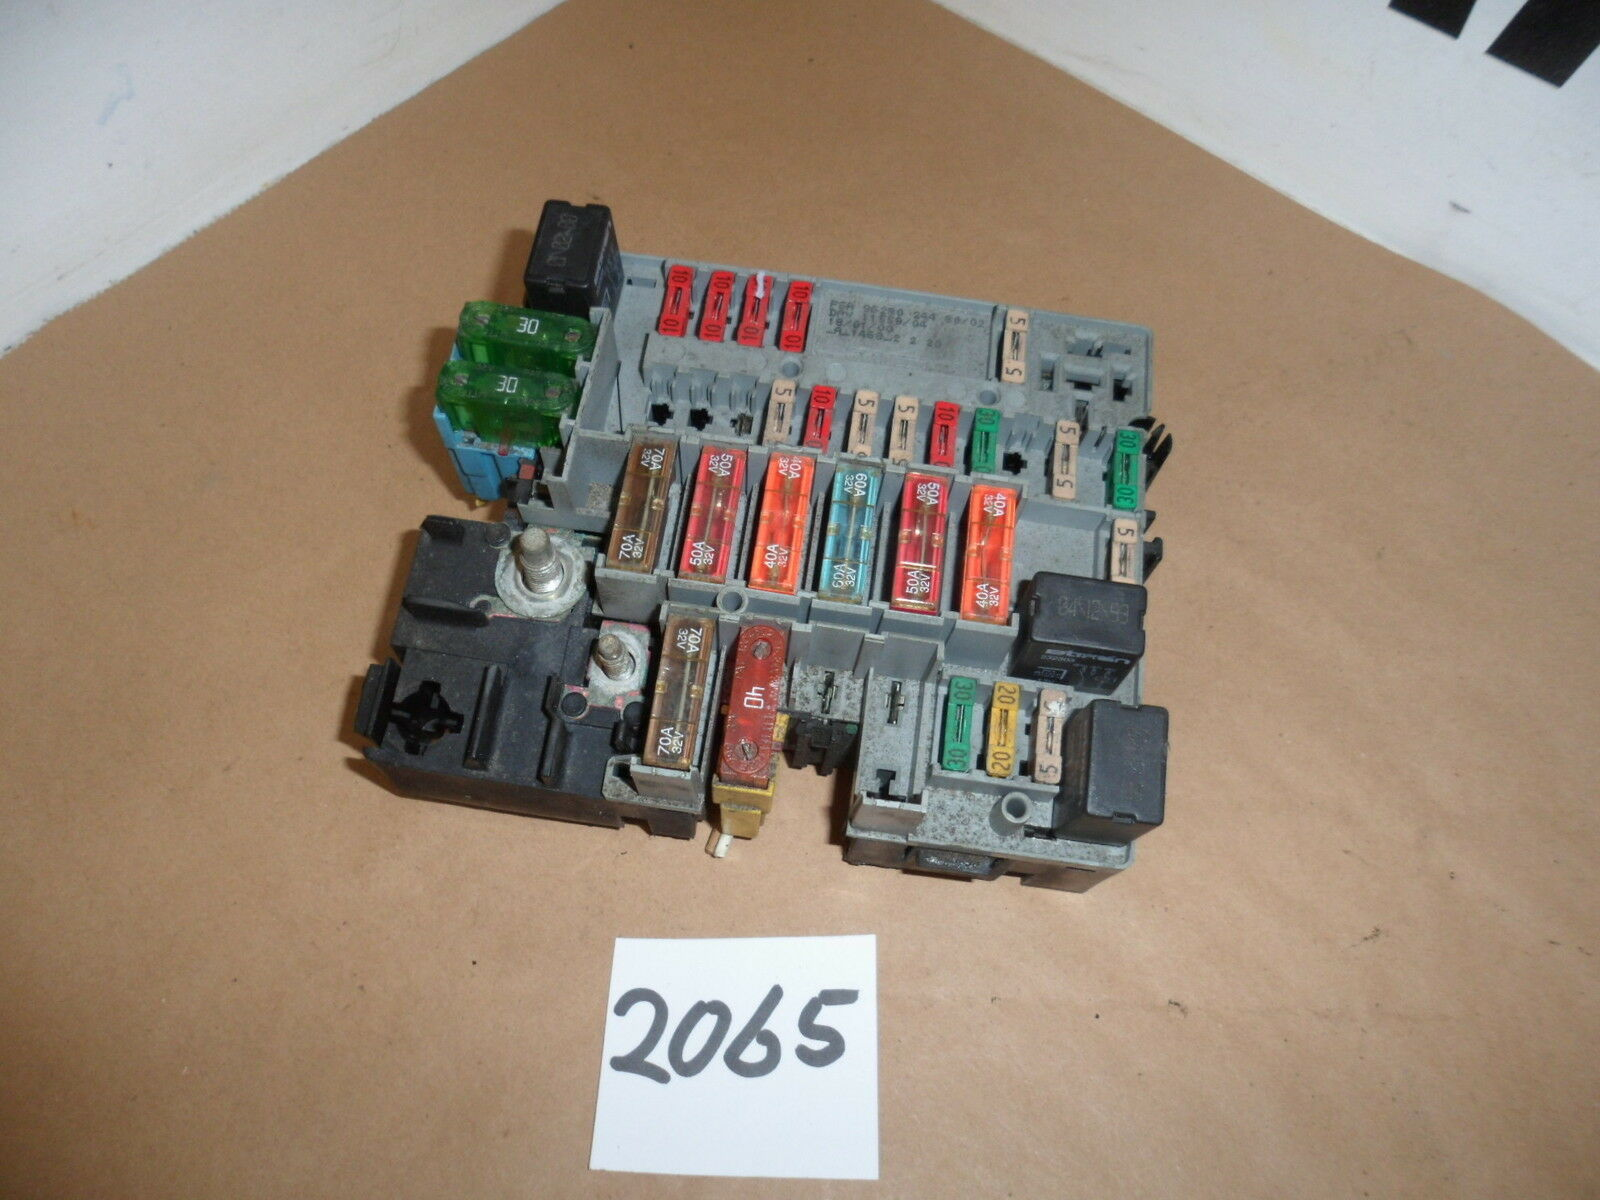 Peugeot 206 GTI Under Bonnet Fuse Box PSA 9628024480/02 DAV 11559/04 1 of  2FREE Shipping ...